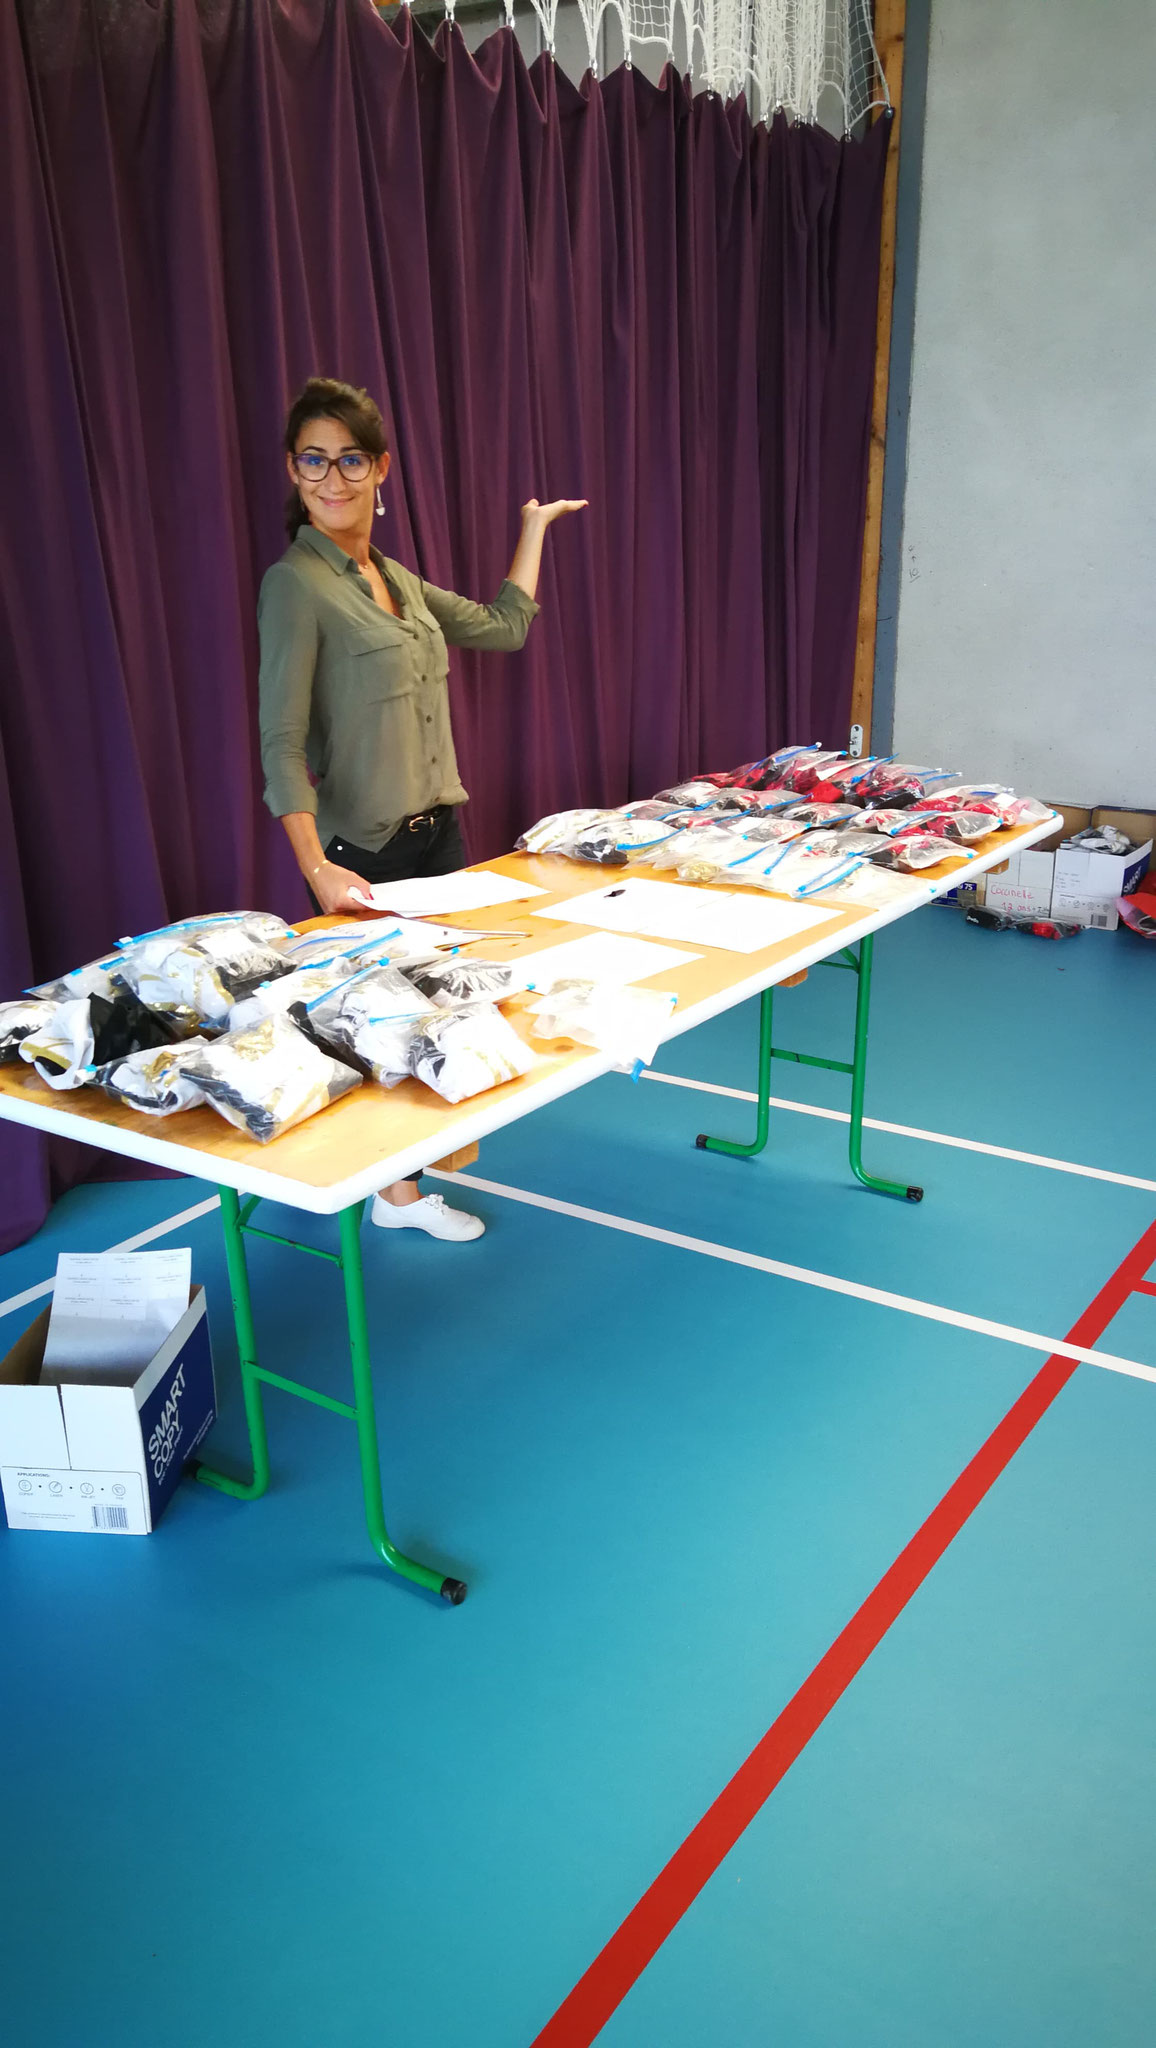 Le stand justeaucorps